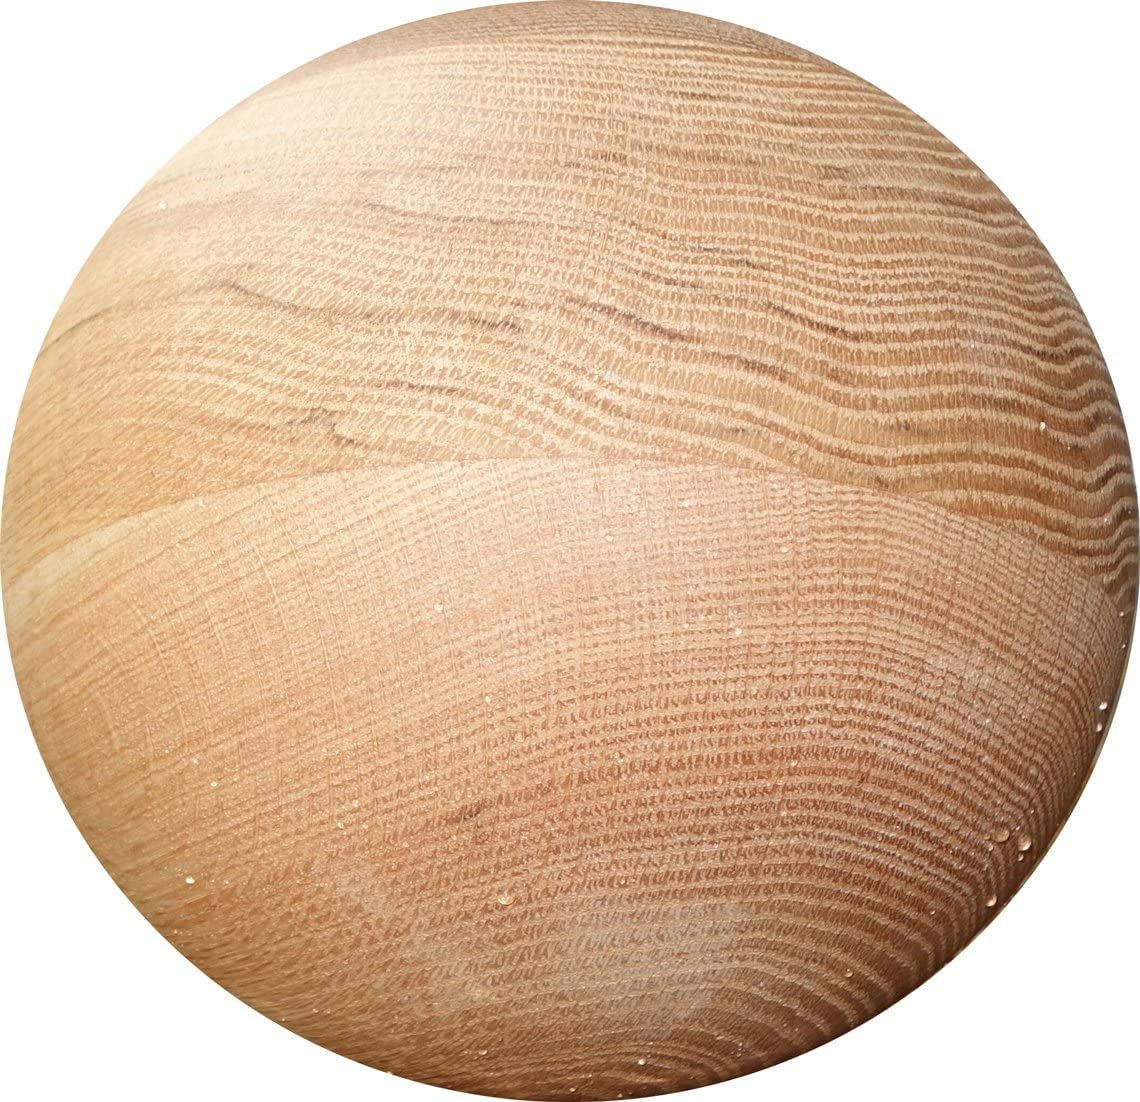 Tai Chi Ball – Large Advanced Wood Tai Chi Ball YMAA 7-8 lbs, 8 inches, Oak. Made in The USA Use with Tai Chi DVD